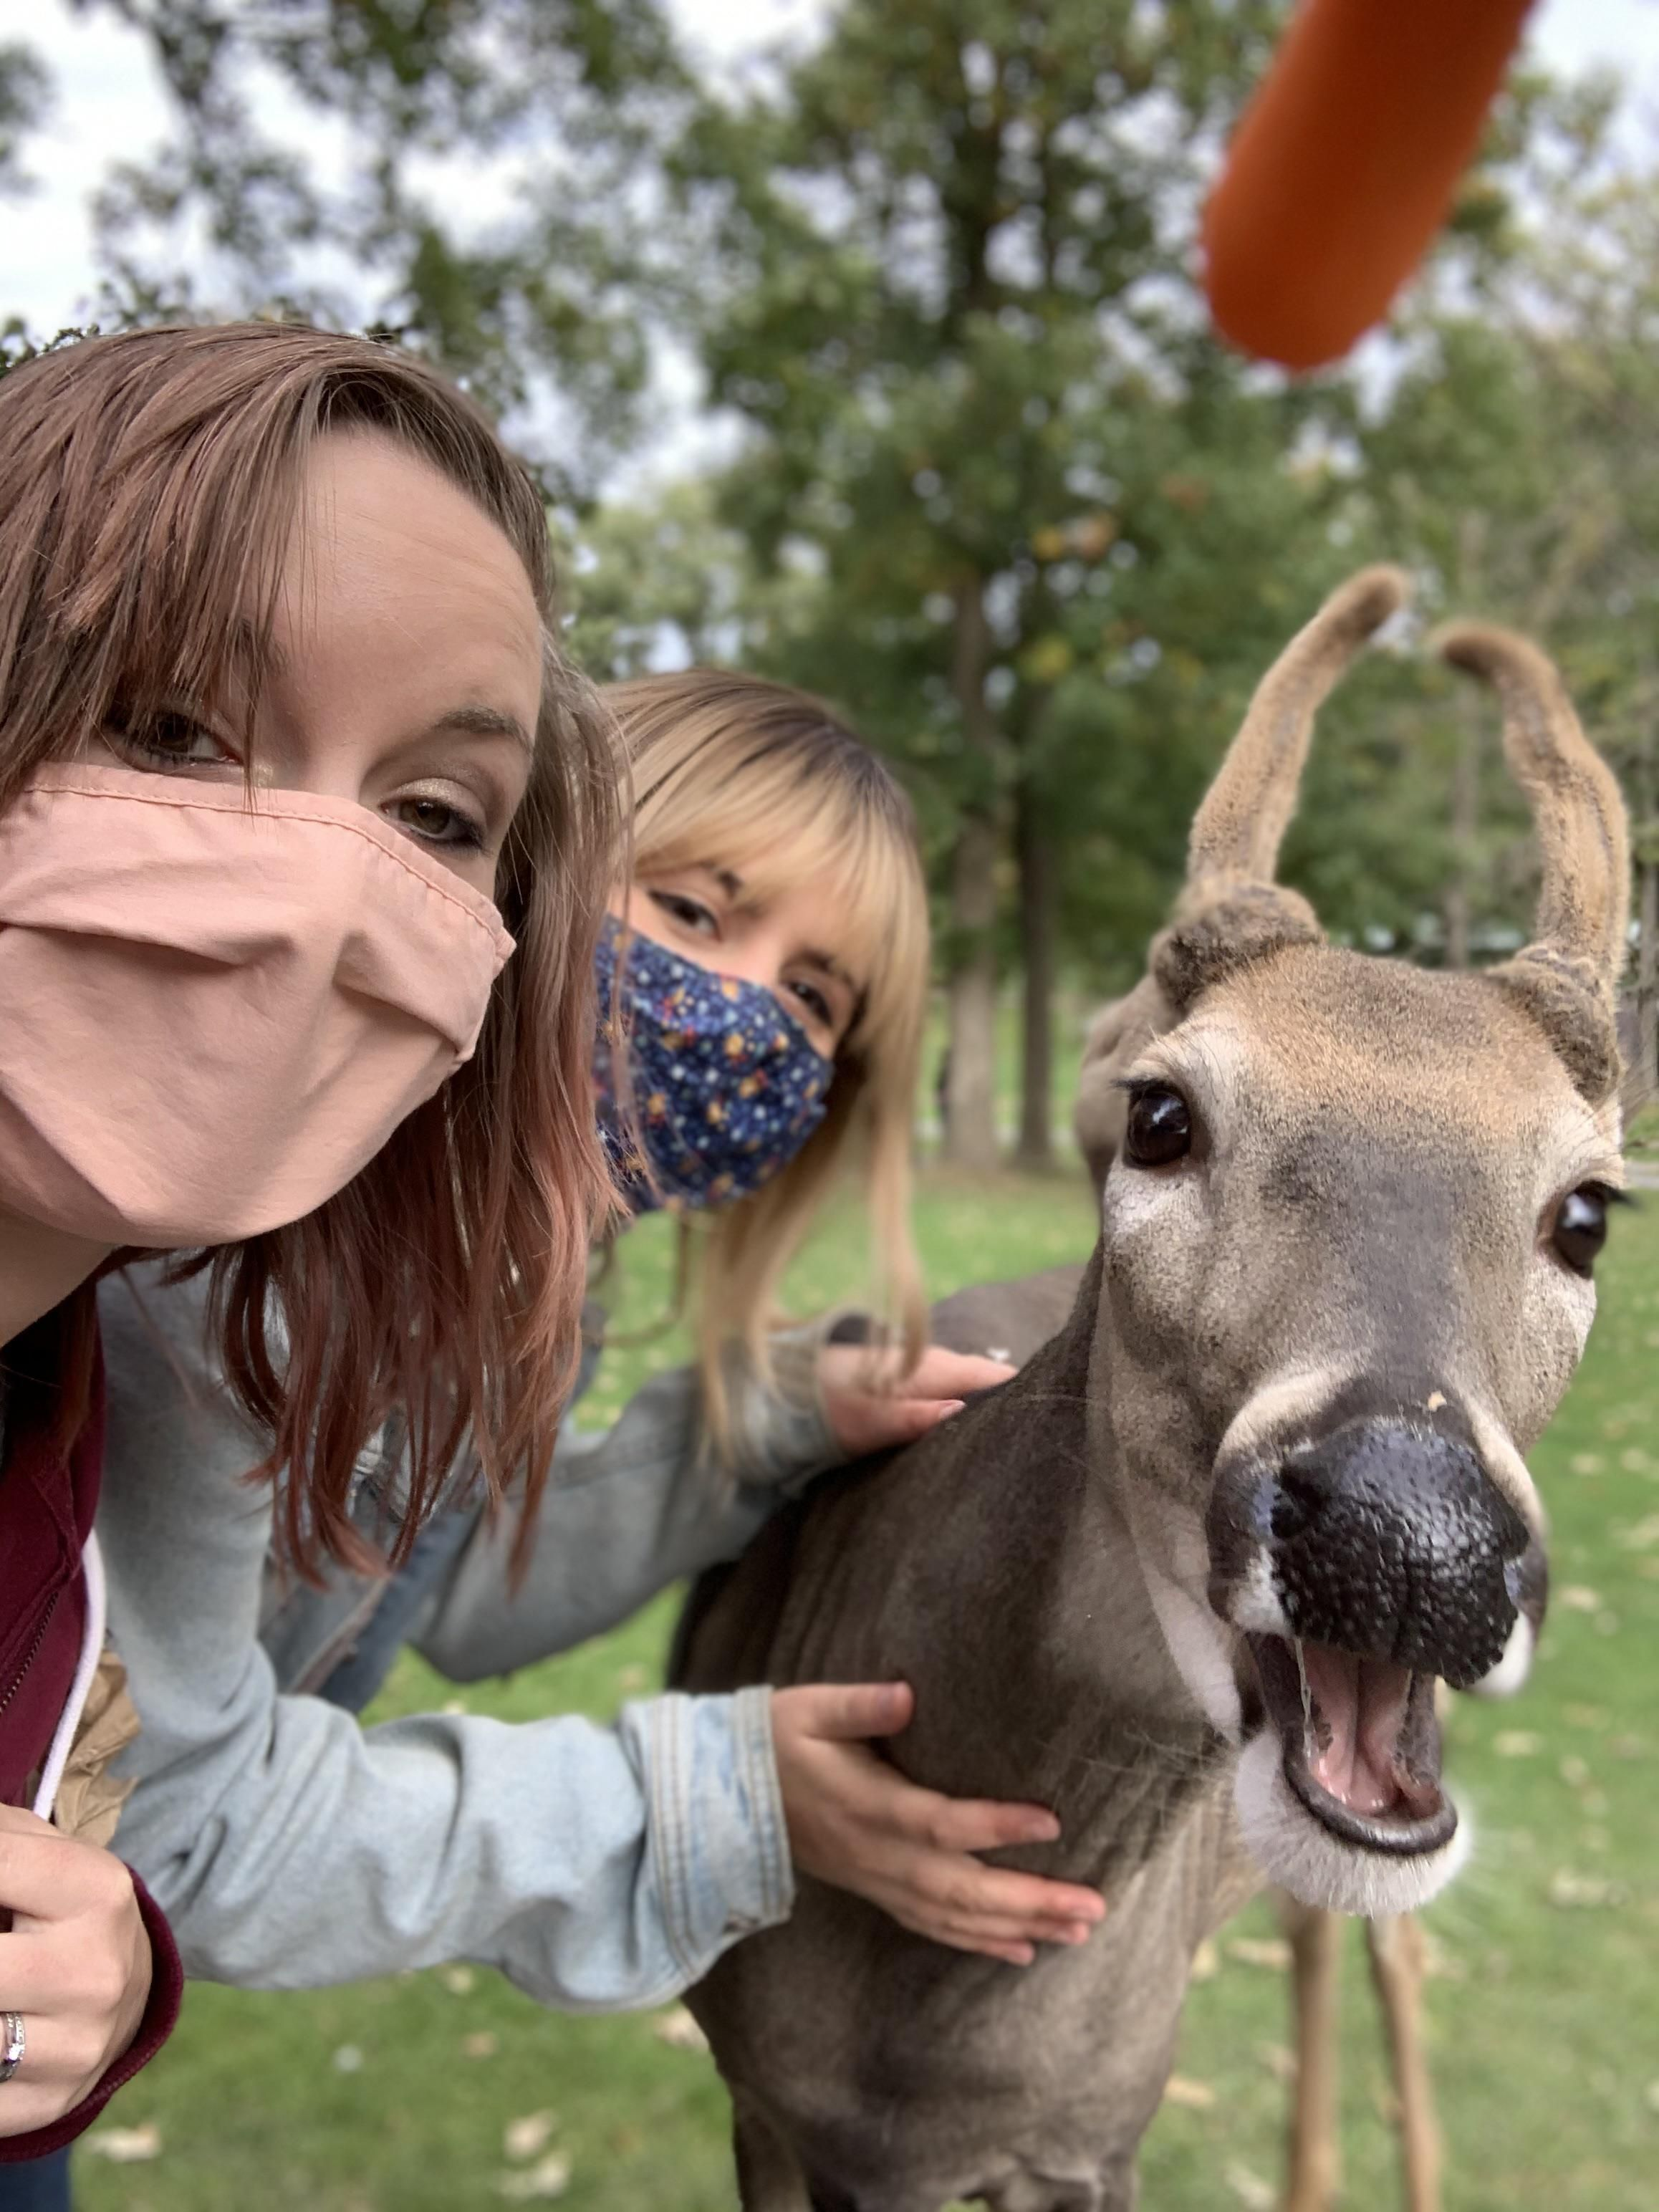 My sister and I wanted a selfie with a deer.